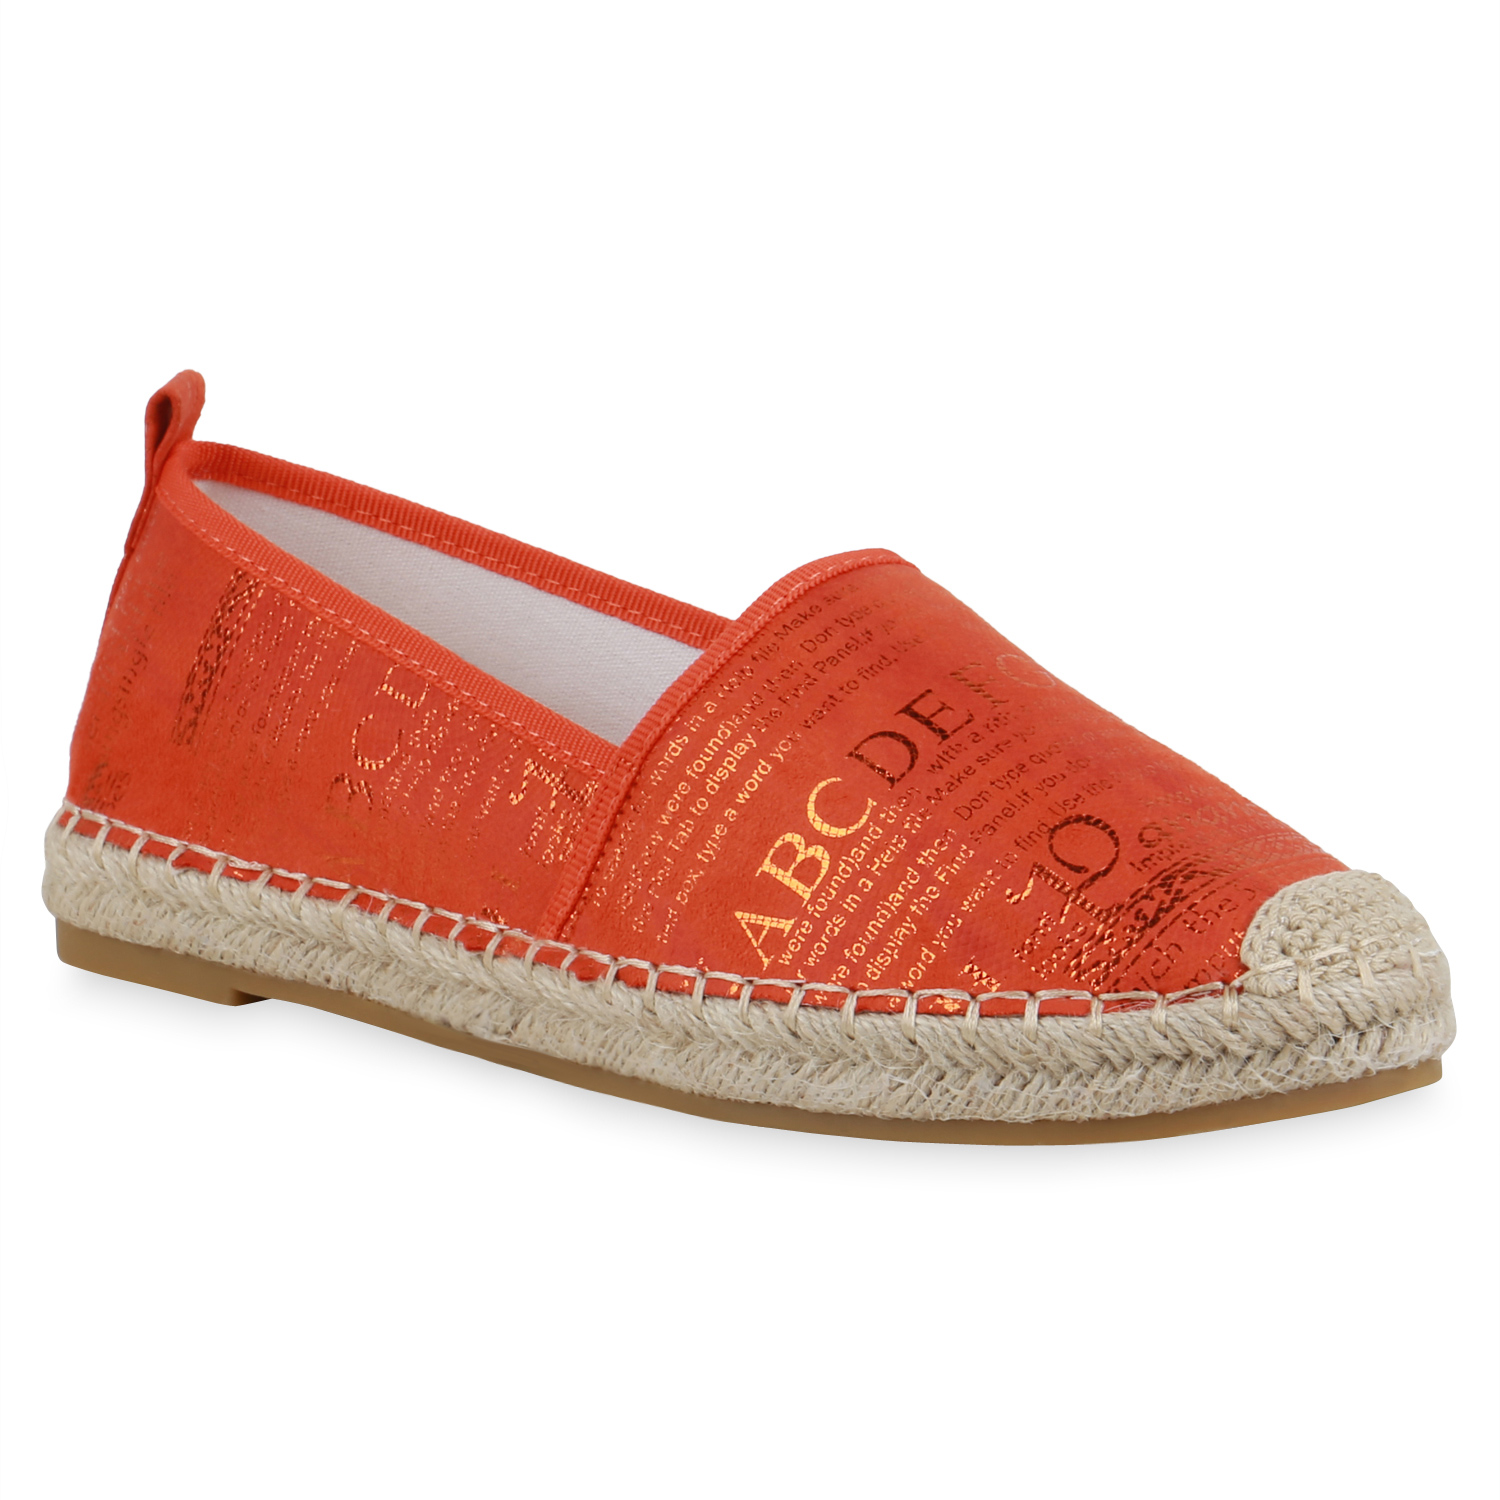 Damen Slippers Espadrilles - Dunkelorange Gold Metallic